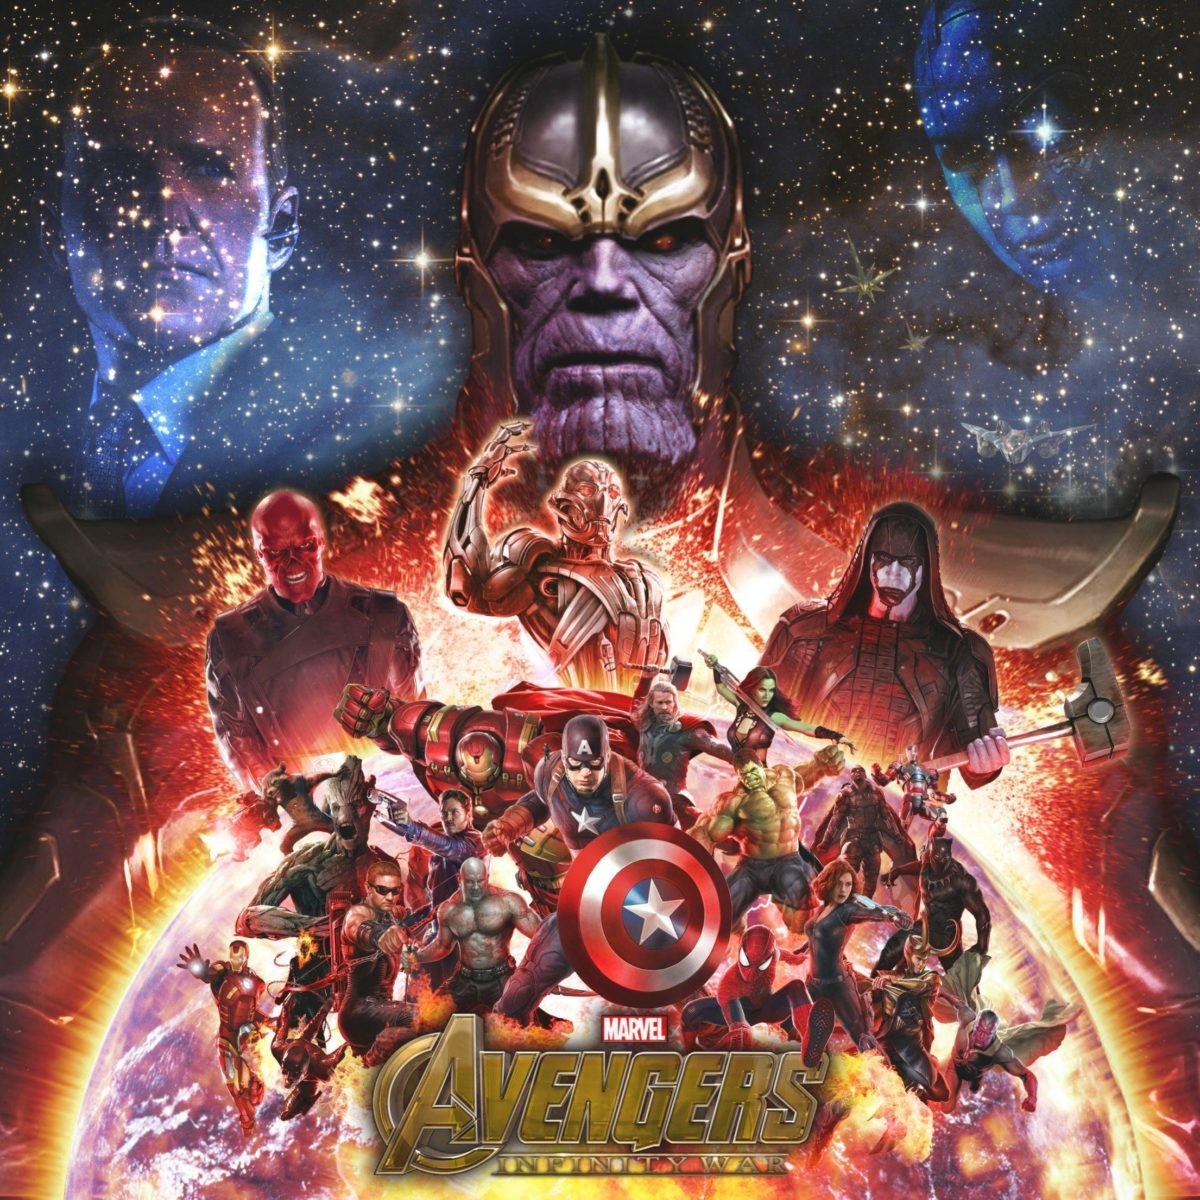 Avengers: Infinity War HD wallpapers free download